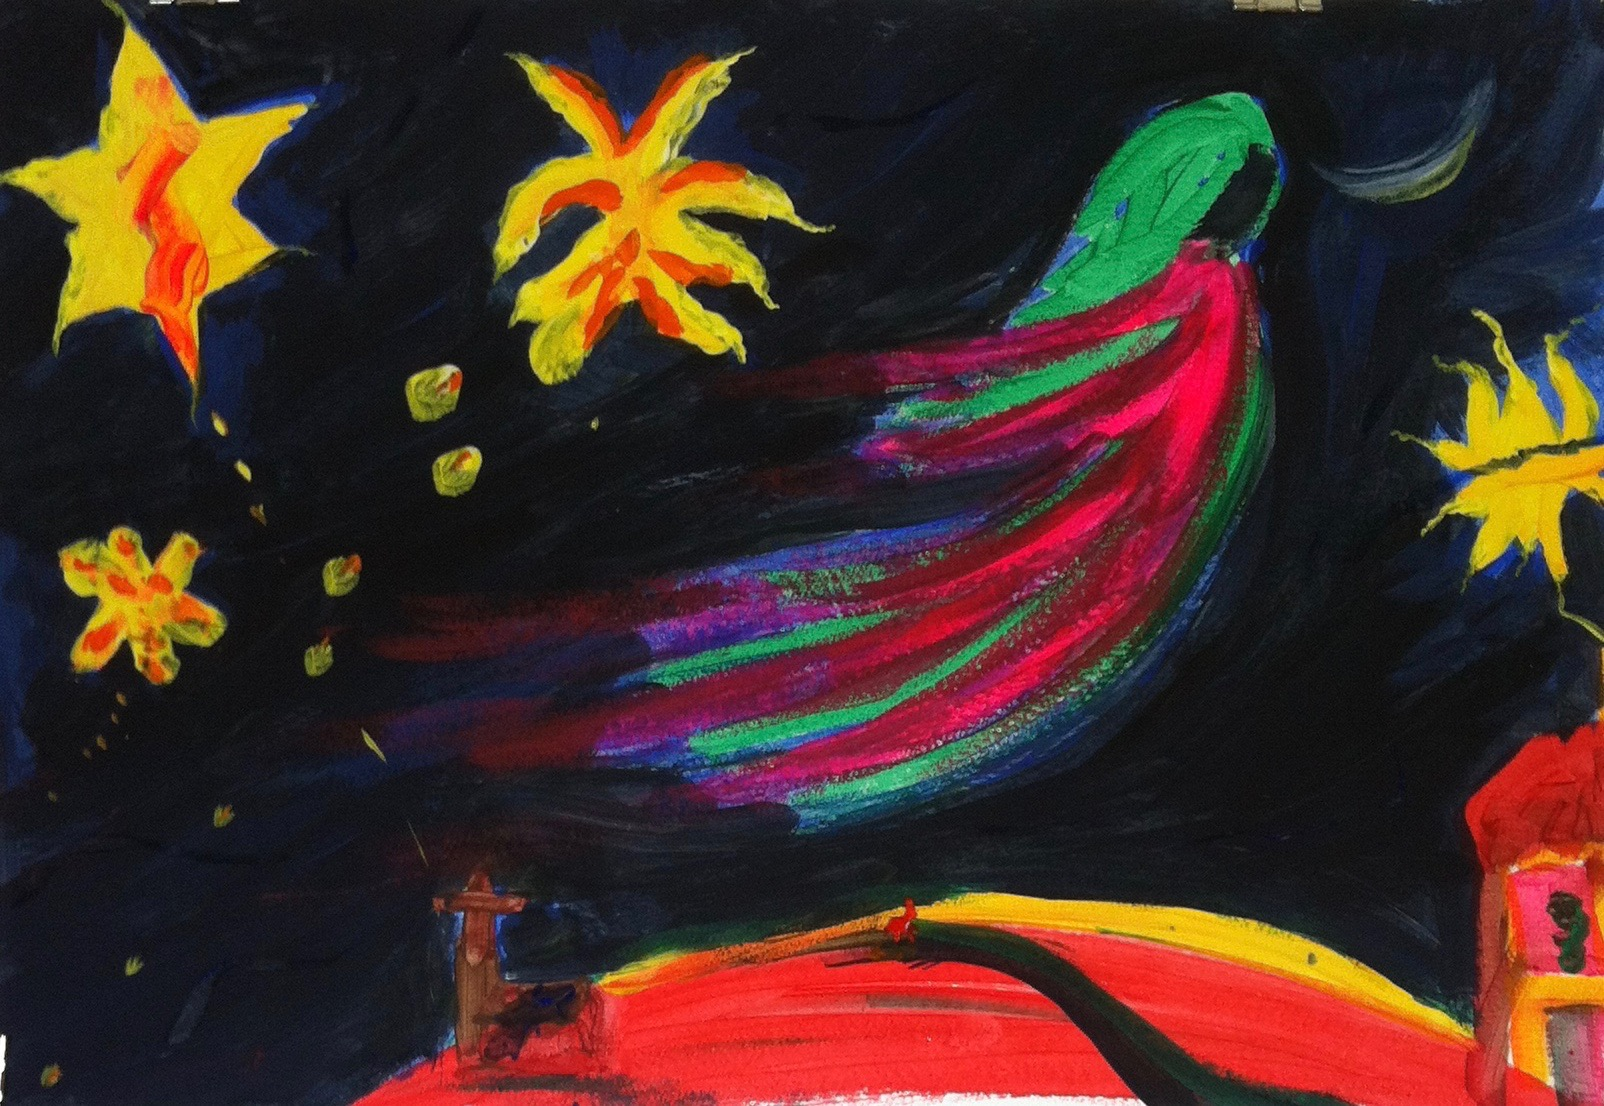 """in 2015, this painting emerged. It chose its own title """"Our flying shapes the sky""""."""